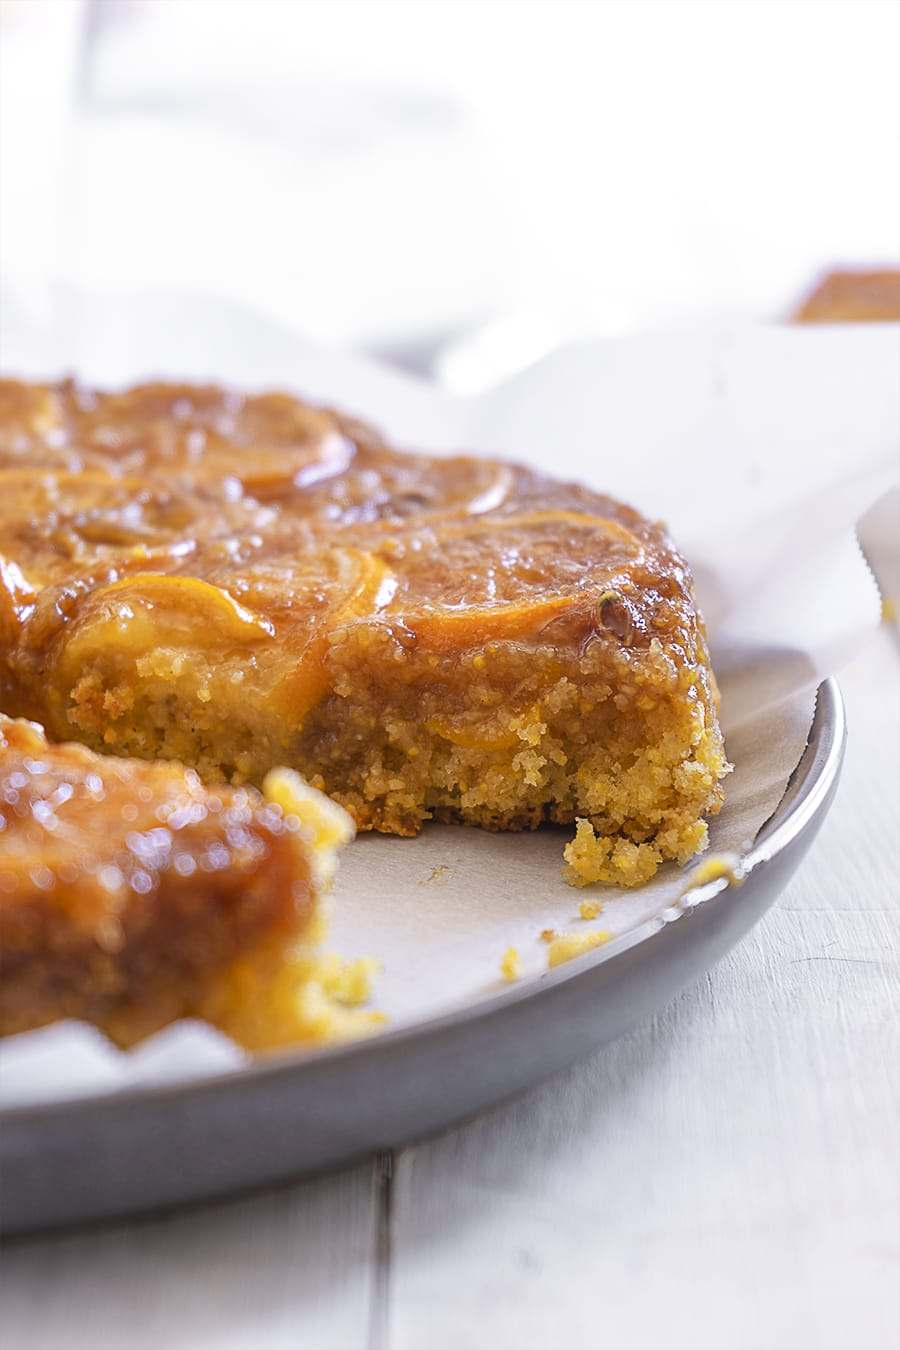 Meyer Lemon and Almond Upside Down Cake - Sugary & Buttery